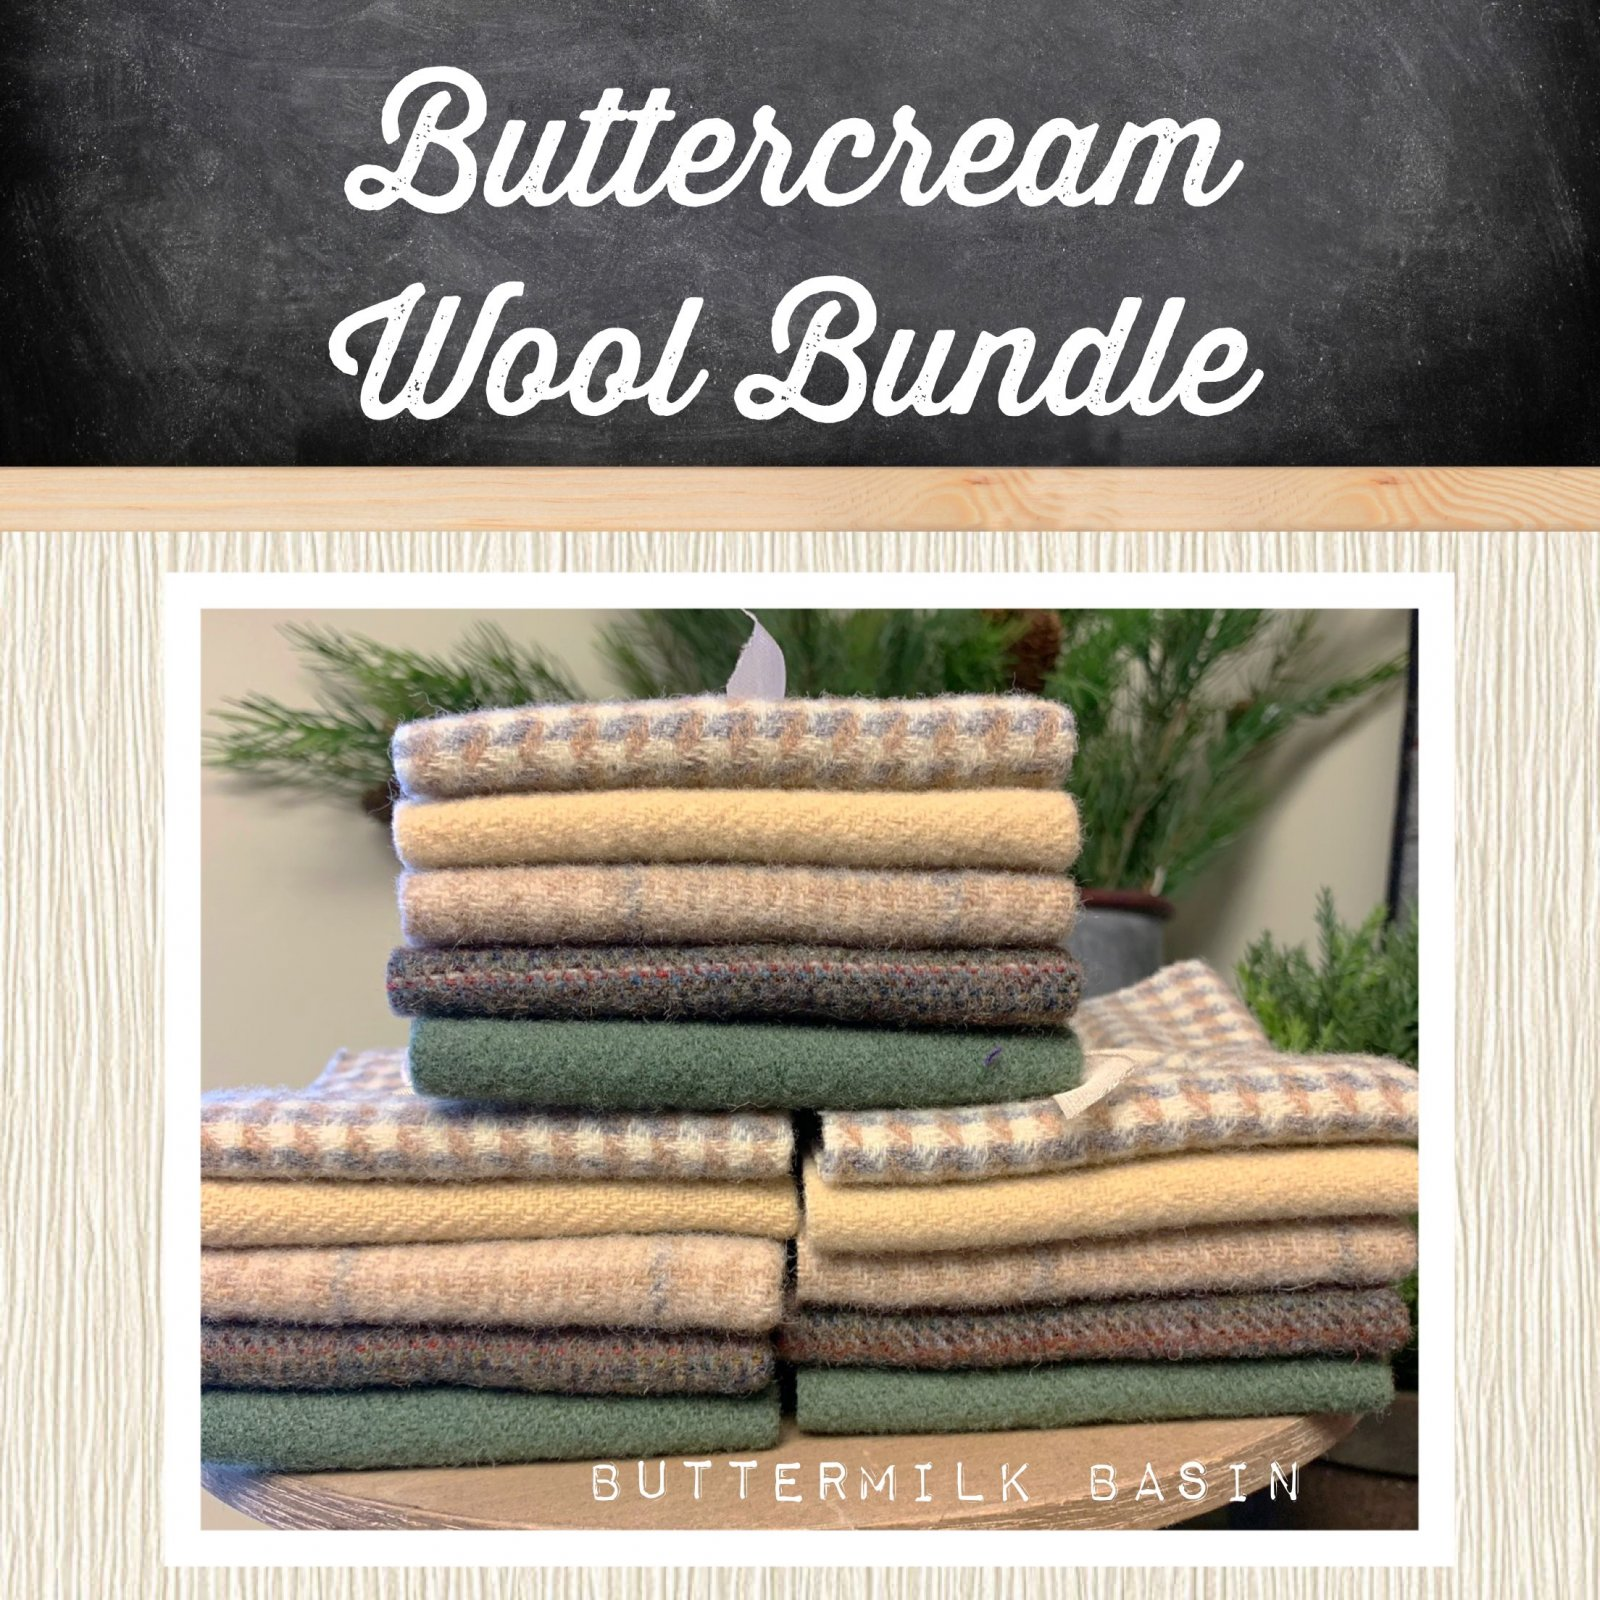 Buttercream Wool Bundle